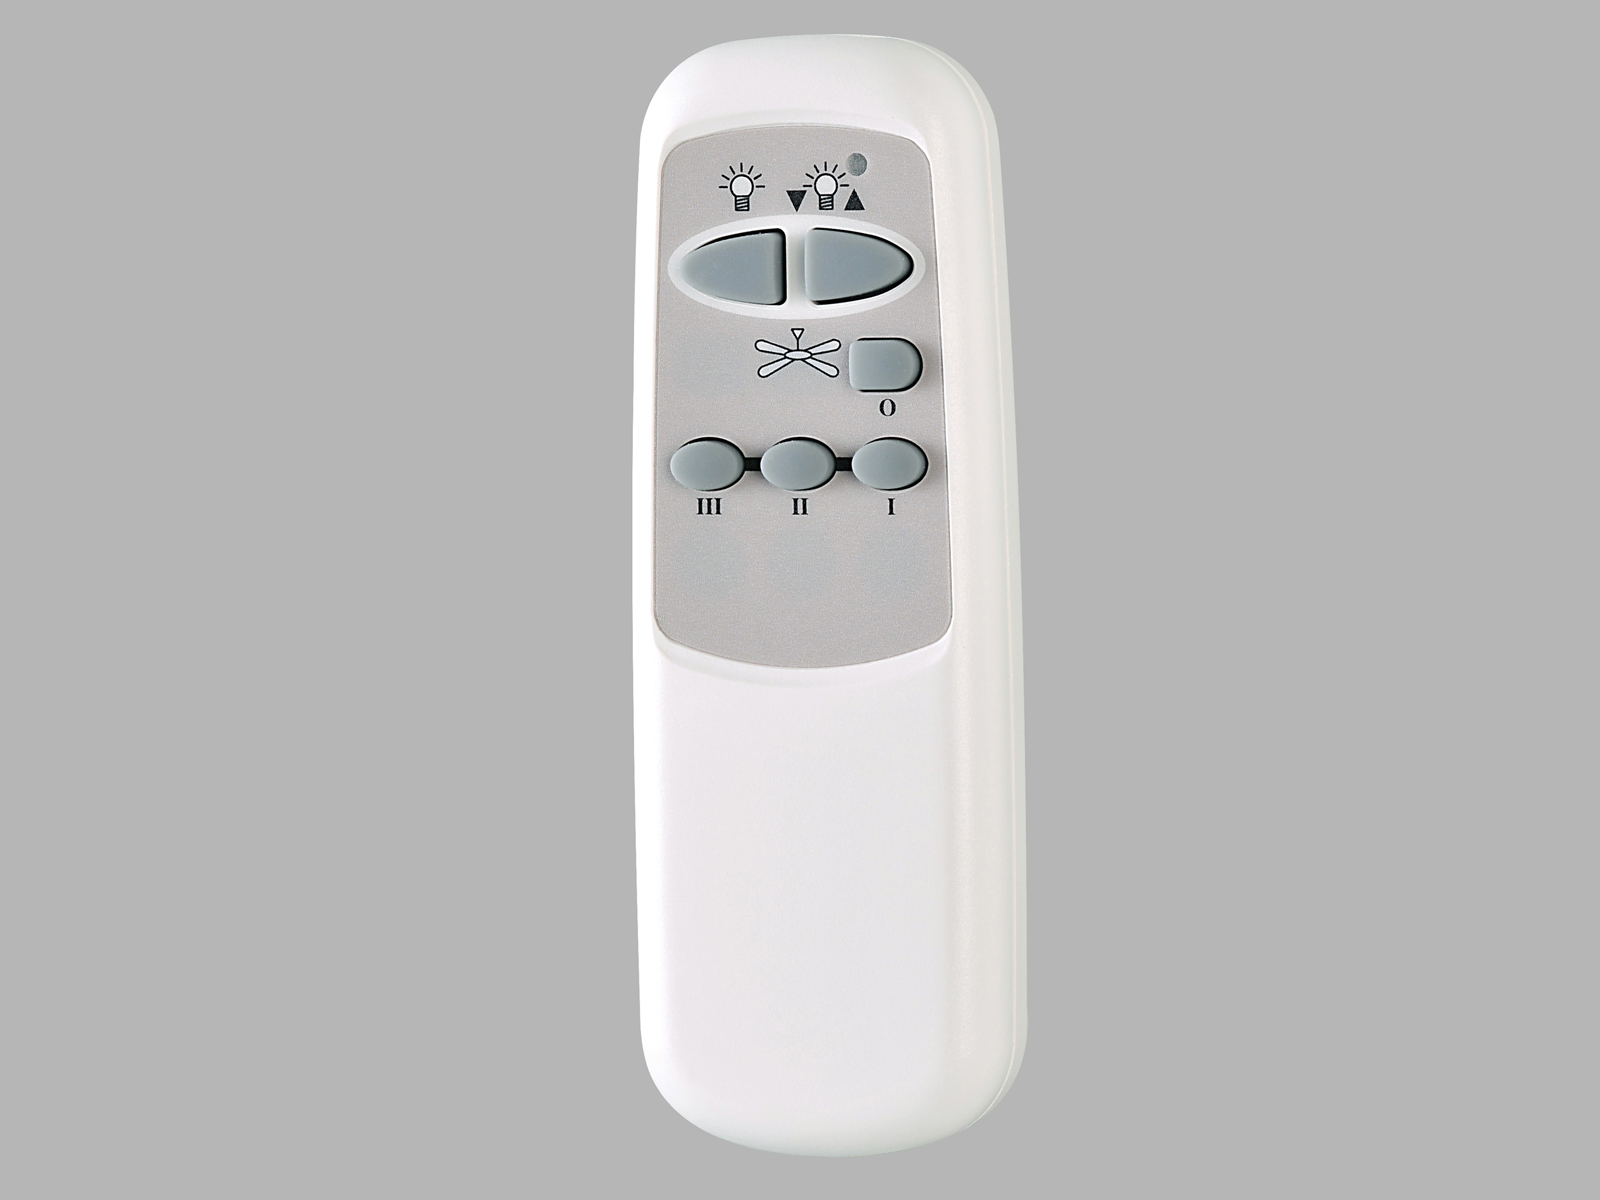 Satellite Electronic Infrared Remote Control Transmitters Id6